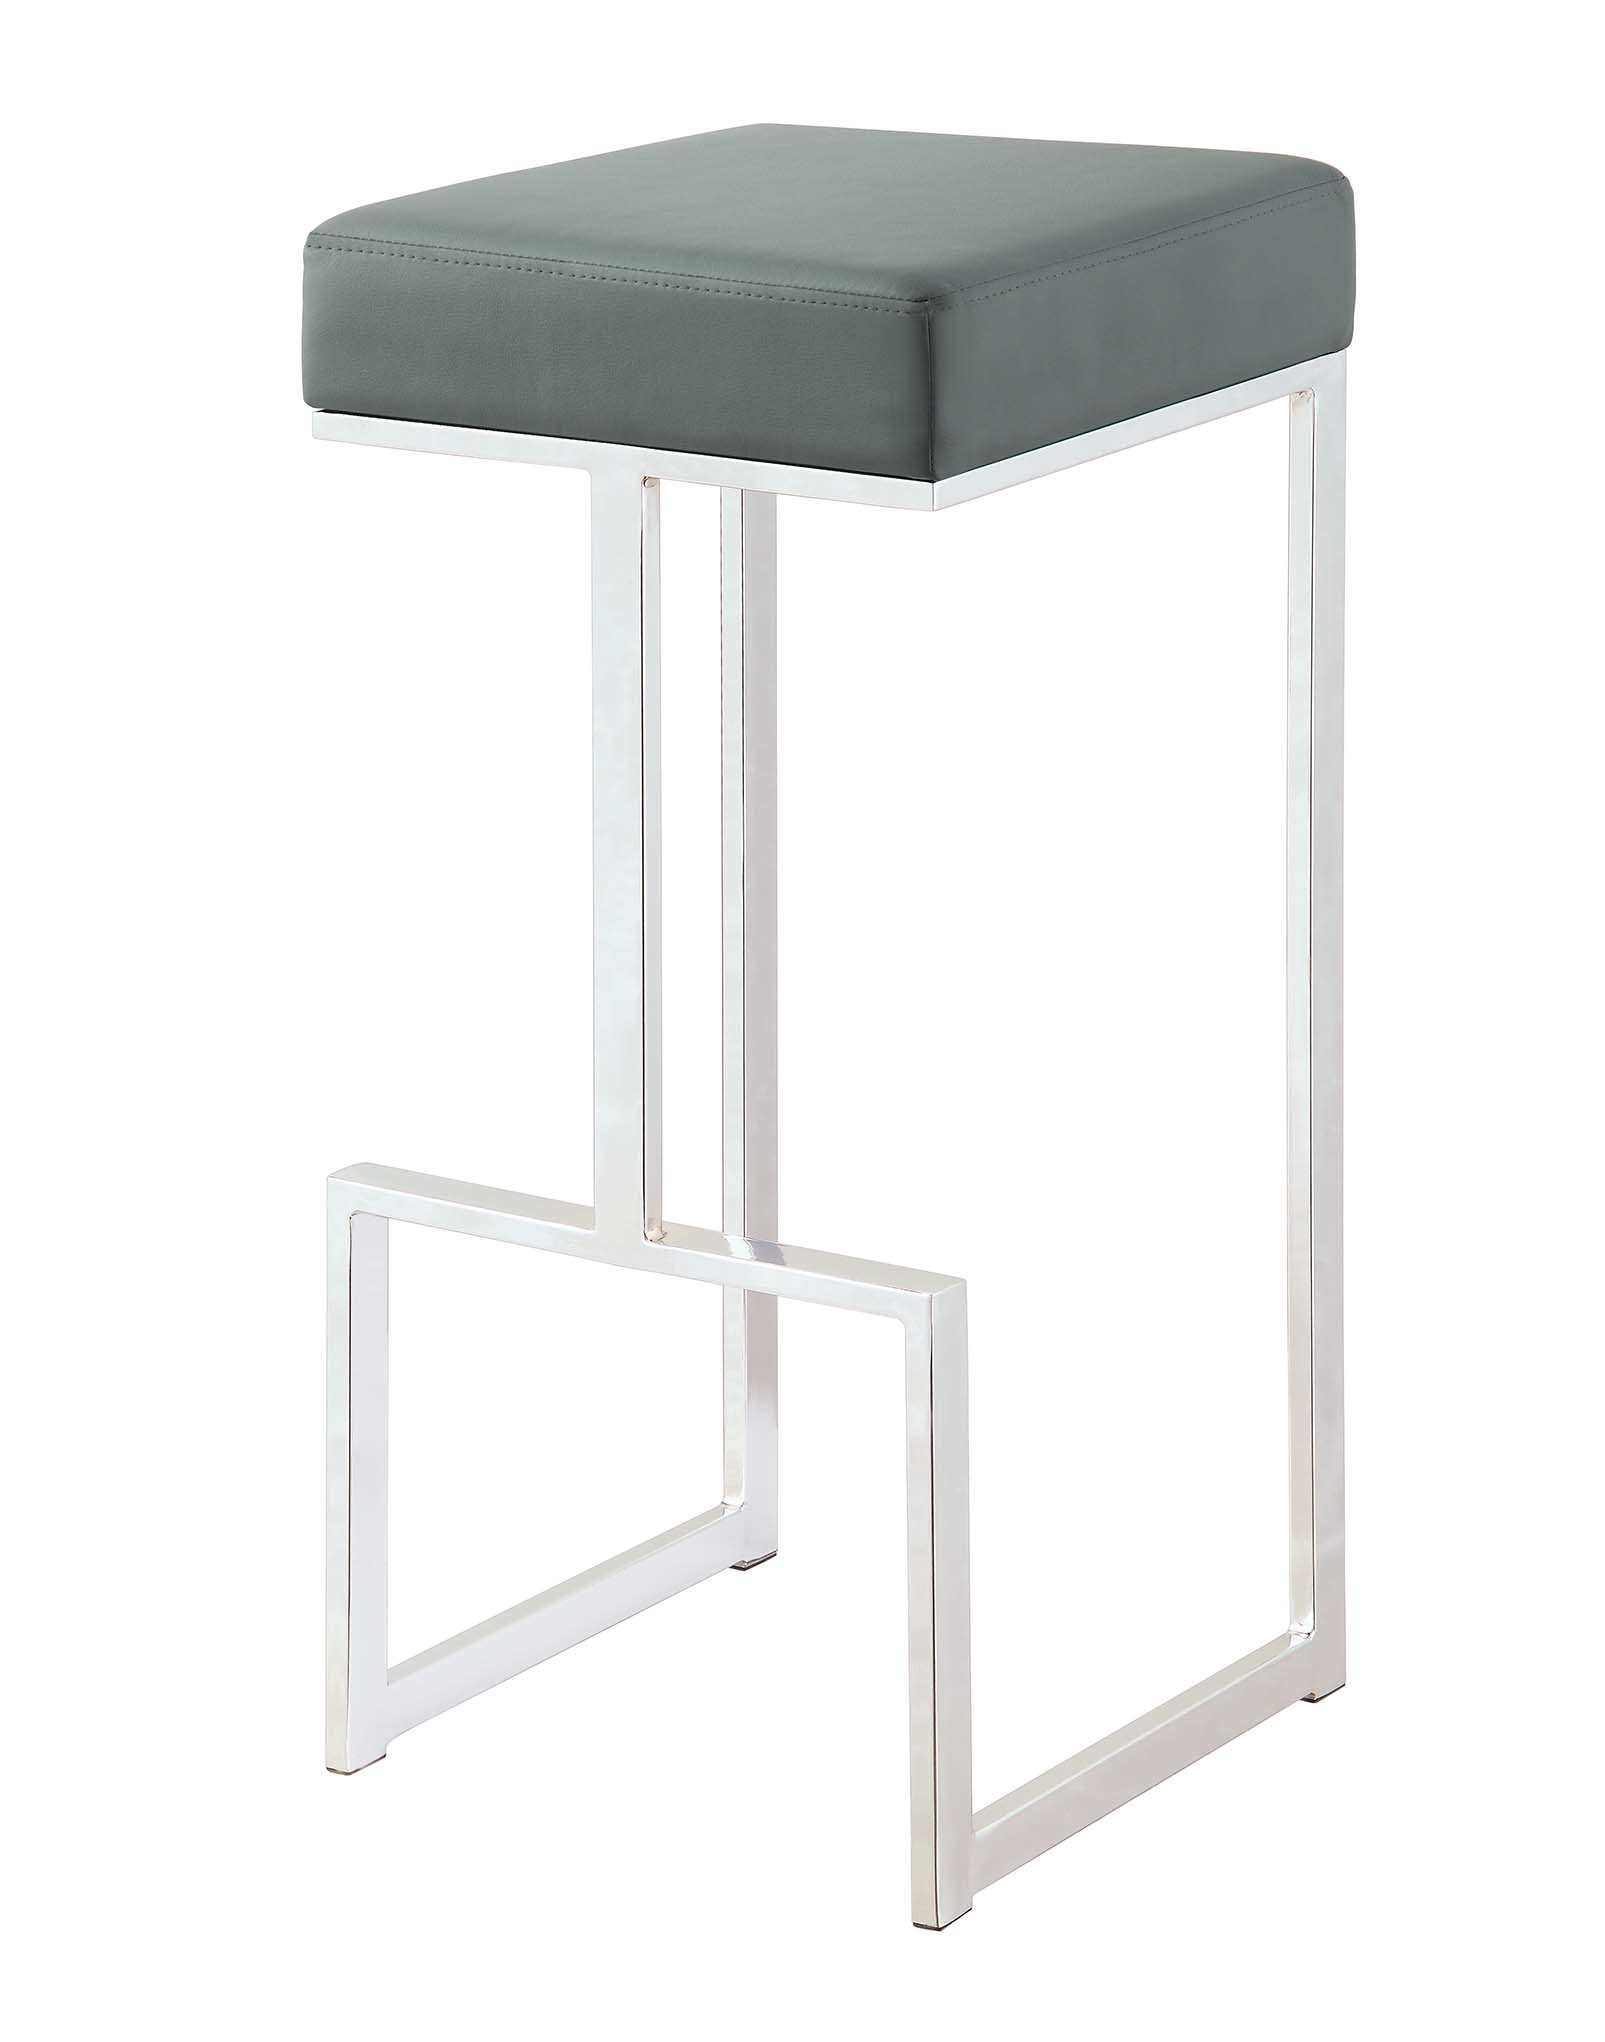 29 BAR STOOL (pack of 1)